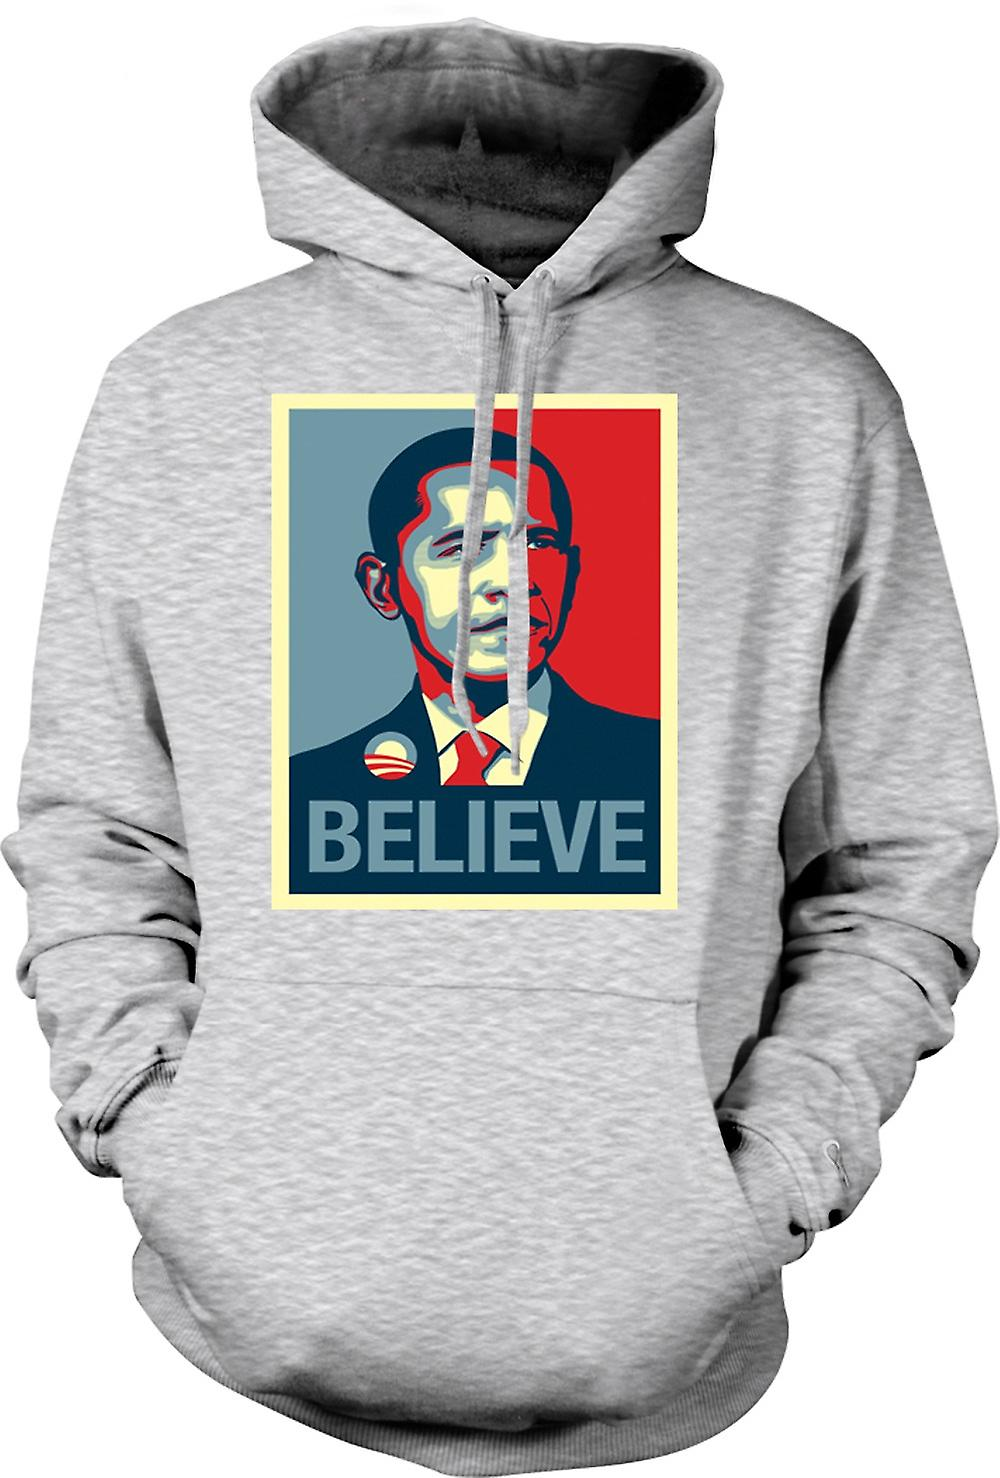 Mens Hoodie - Obama Believe Change